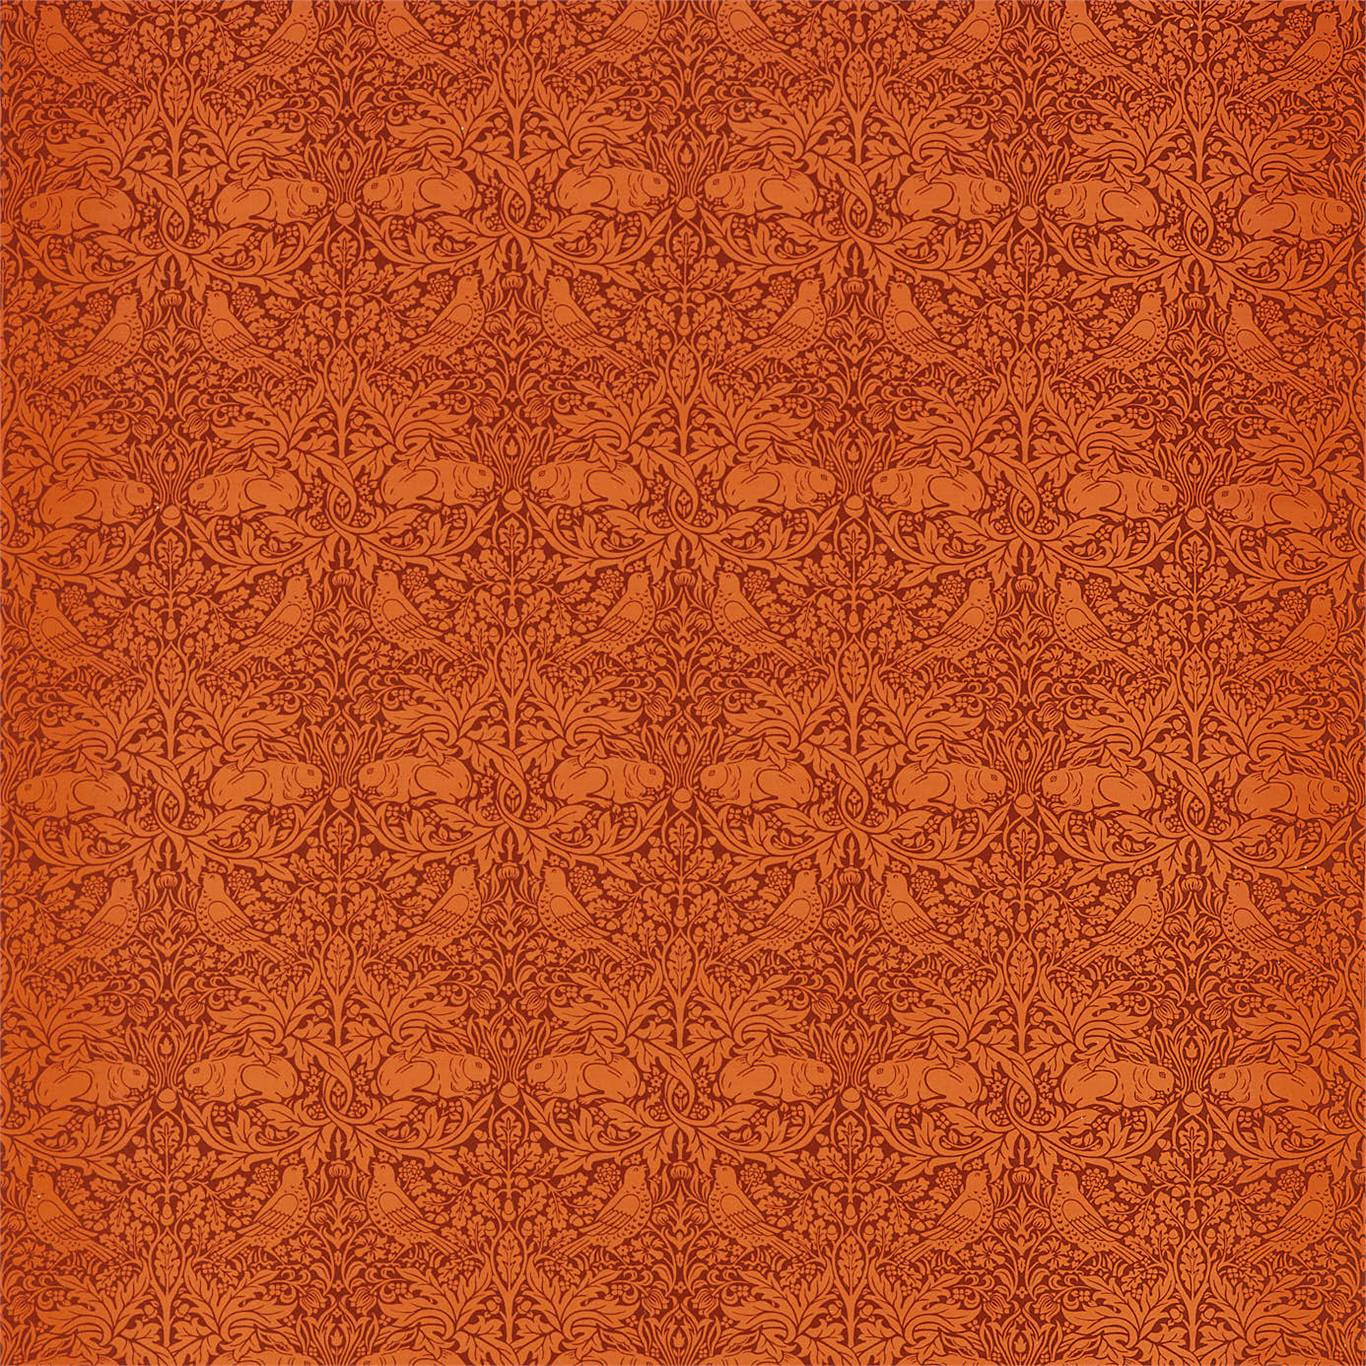 DBPF226849 Collection - Queens Square Fabric